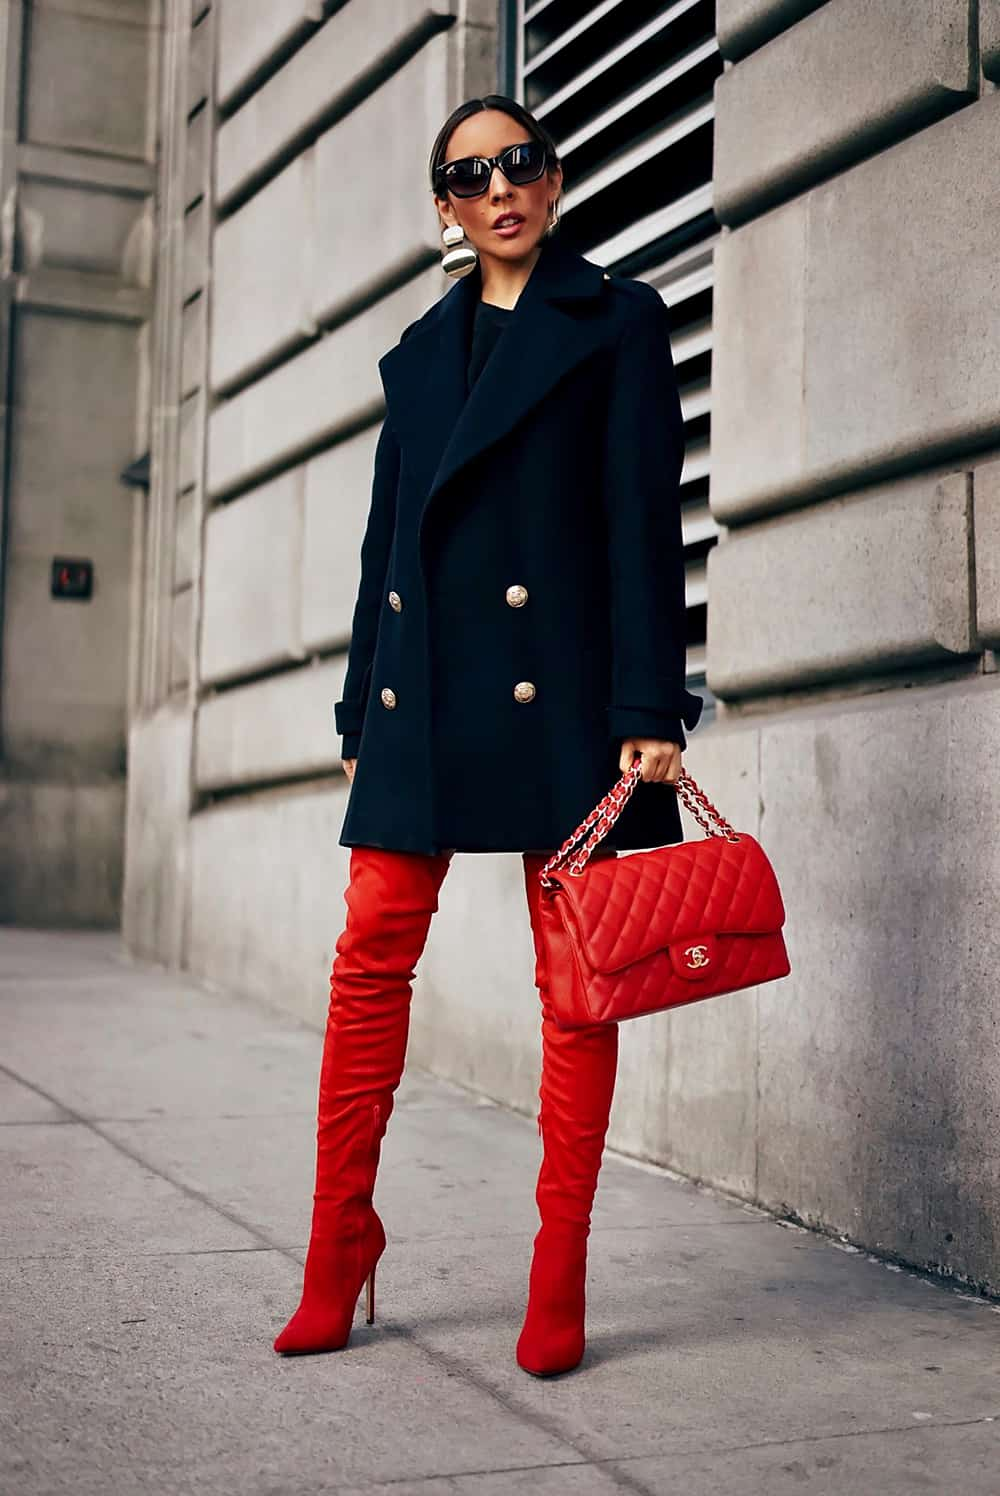 Red Boots: The 2018 Biggest Trend That Goes With ...